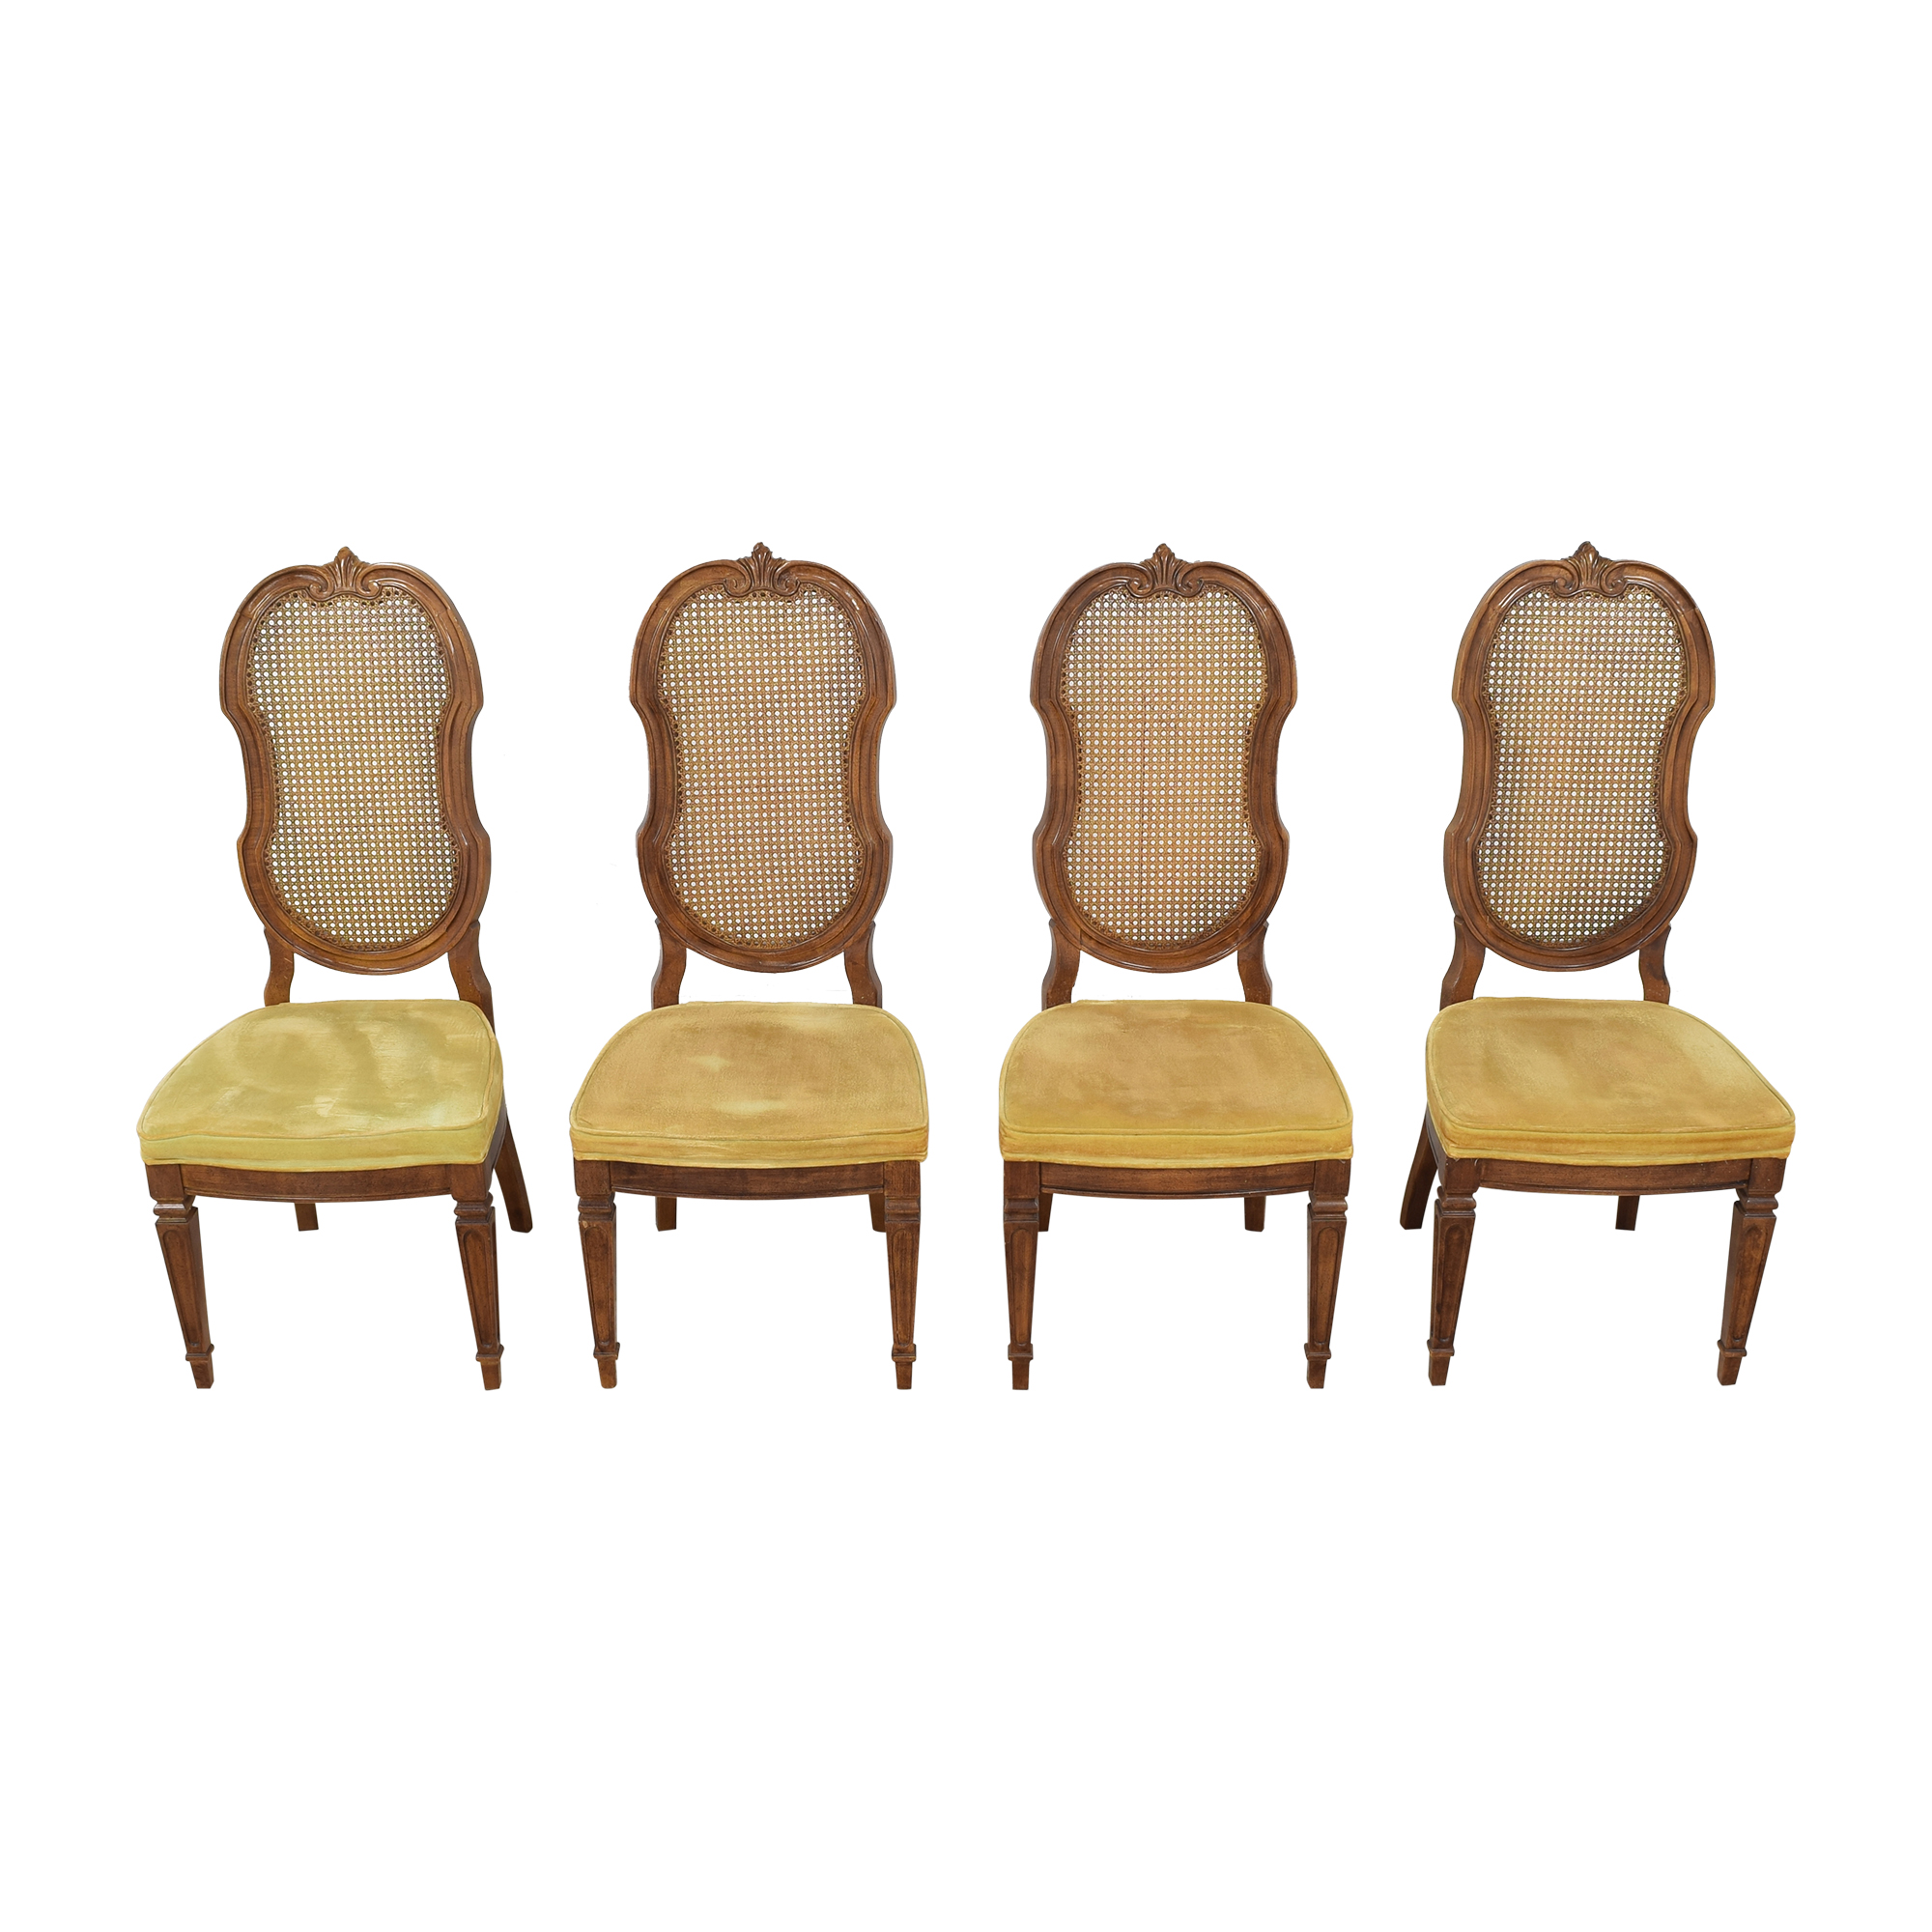 shop Thomasville Italian Provincial Style Dining Chairs Thomasville Chairs